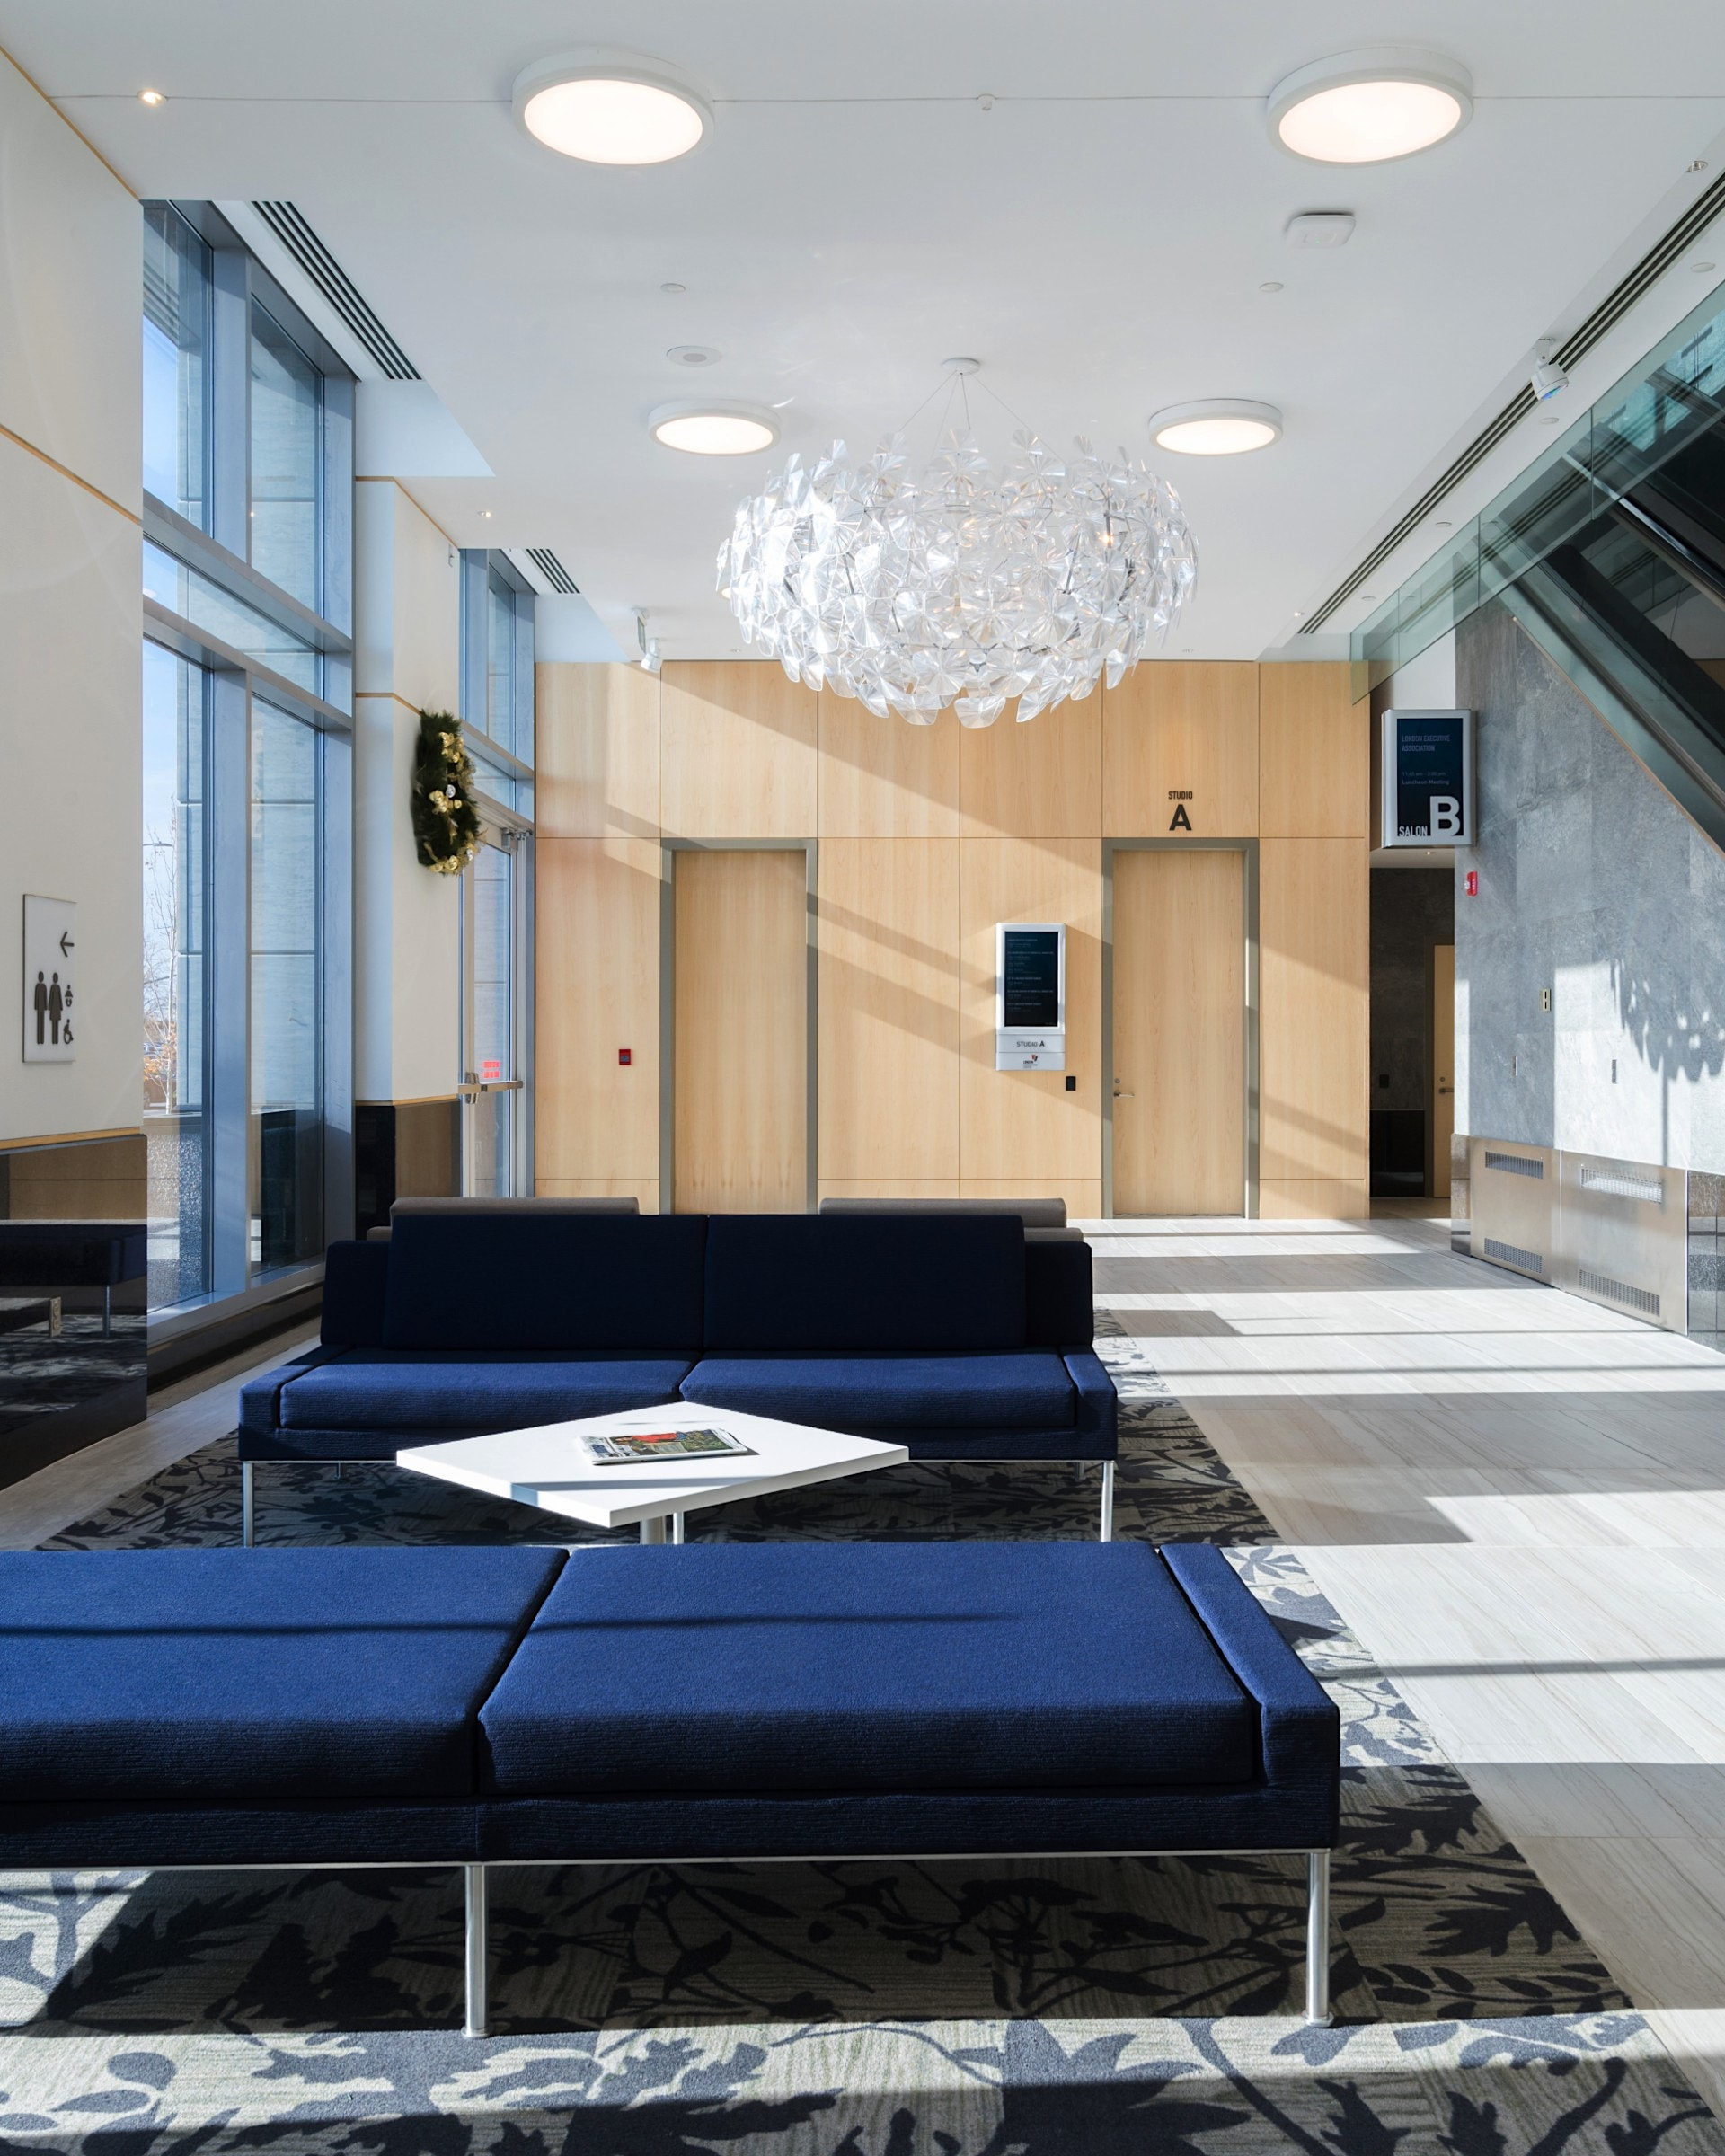 LCC Architectural interior and fixtures